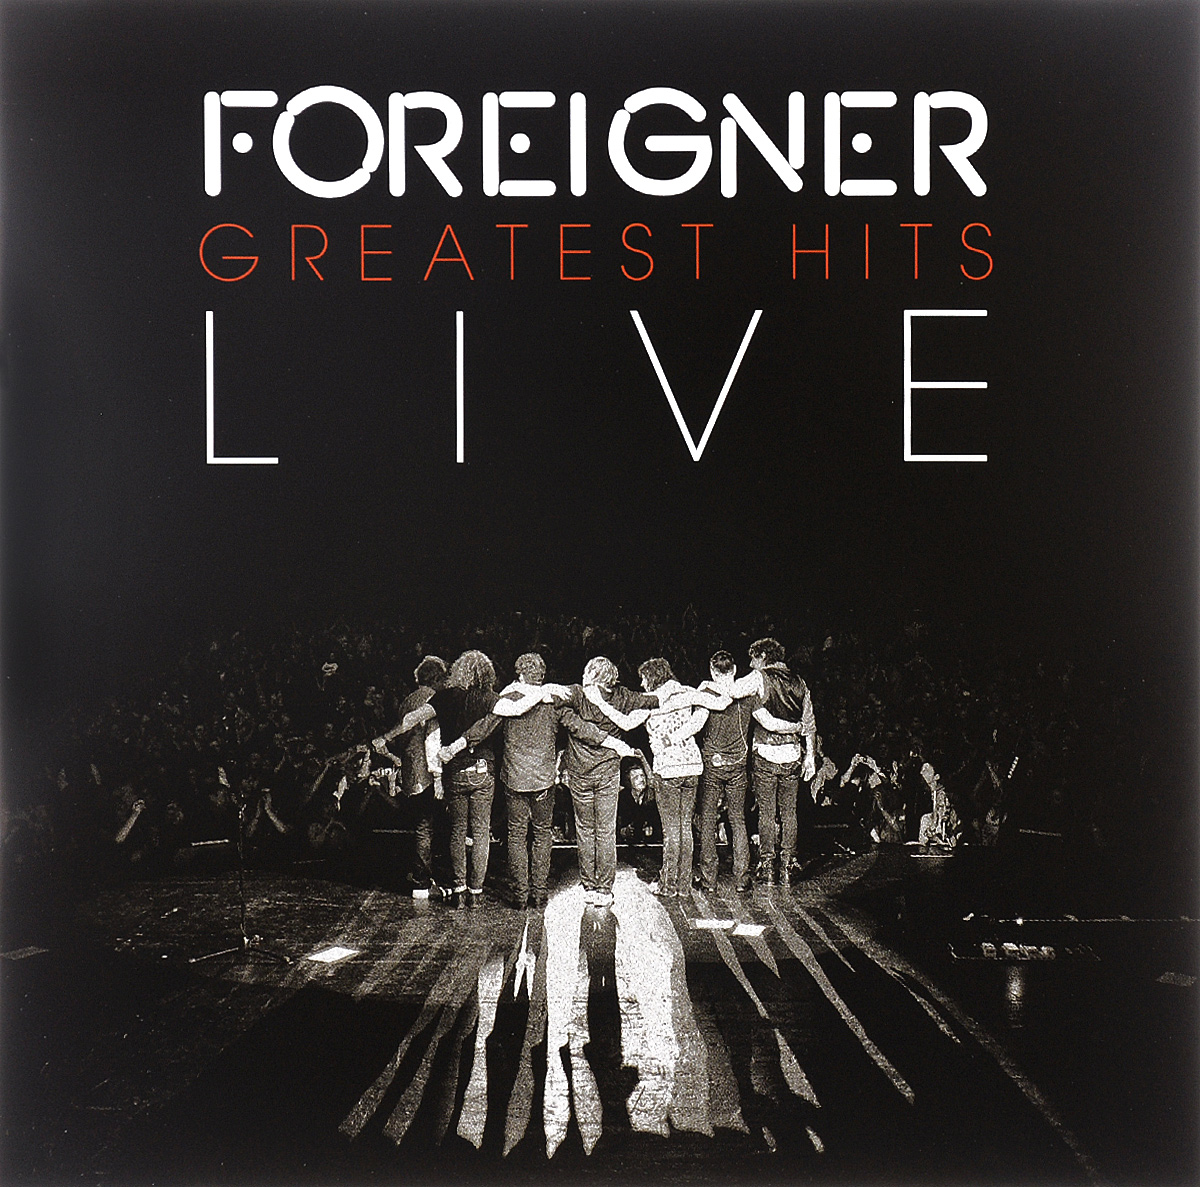 Foreigner Foreigner. Greatest Hits. Live foreigner foreigner 40